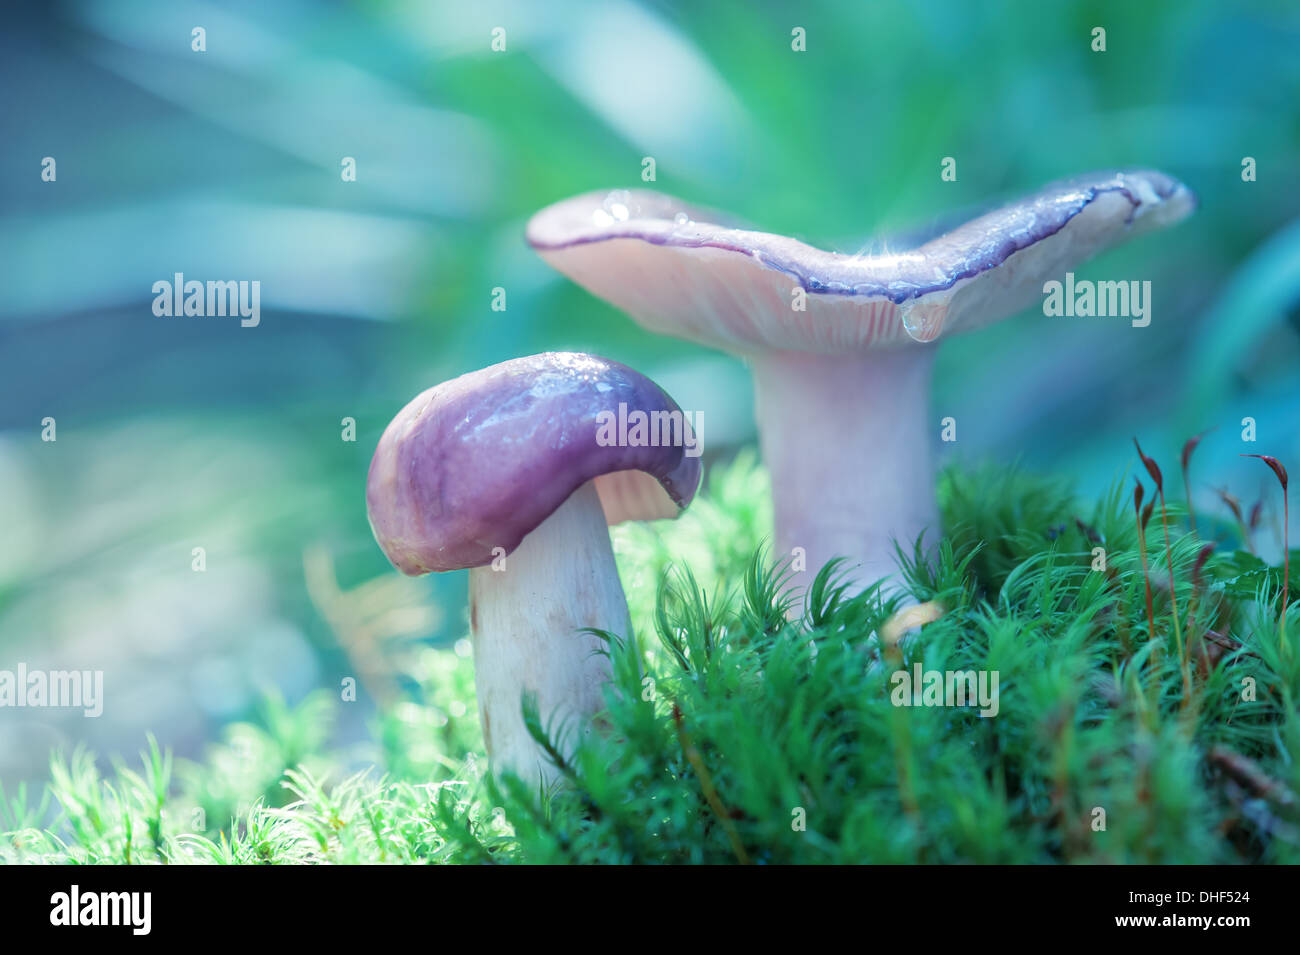 mushroom in forest close up - Stock Image